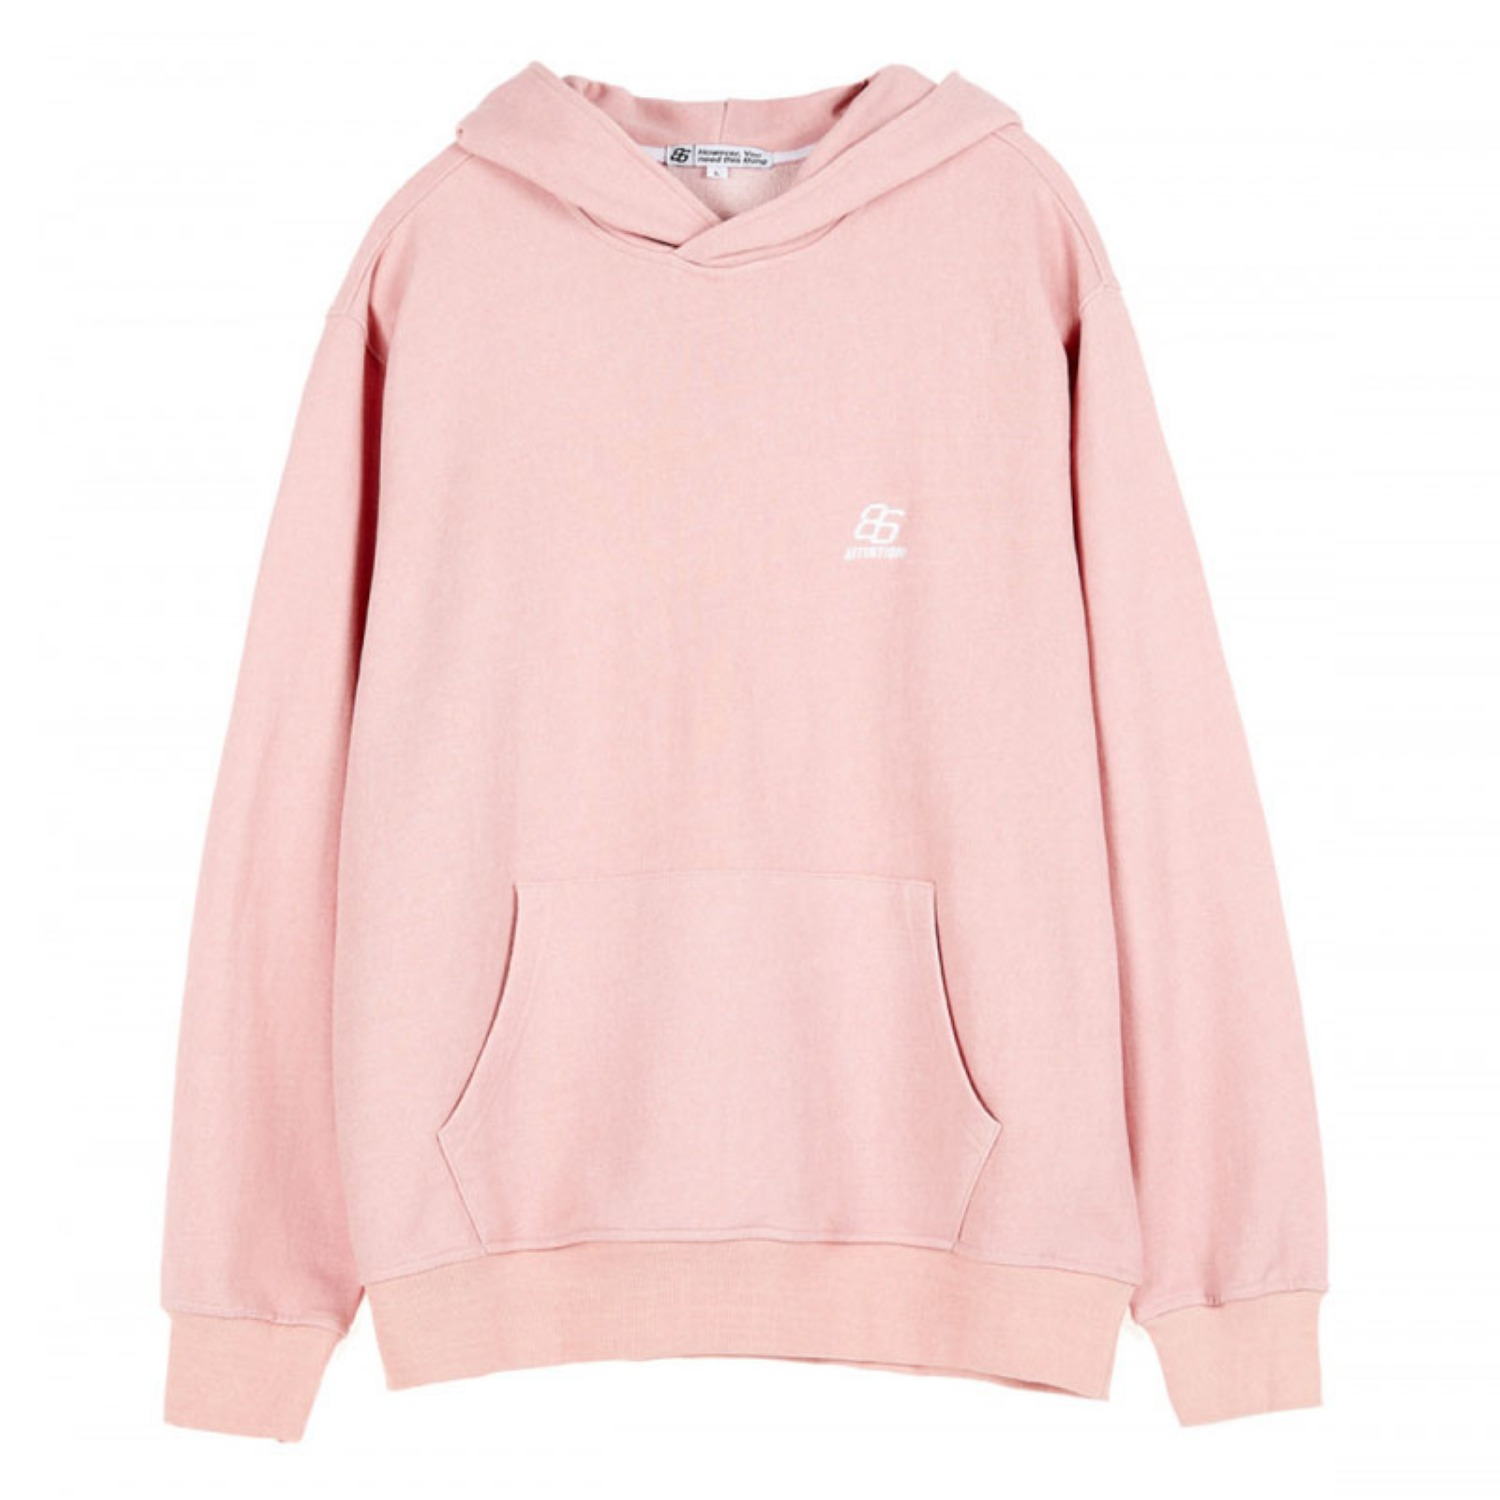 EFFECT DYED HOOD BABYPINK (special coupon)